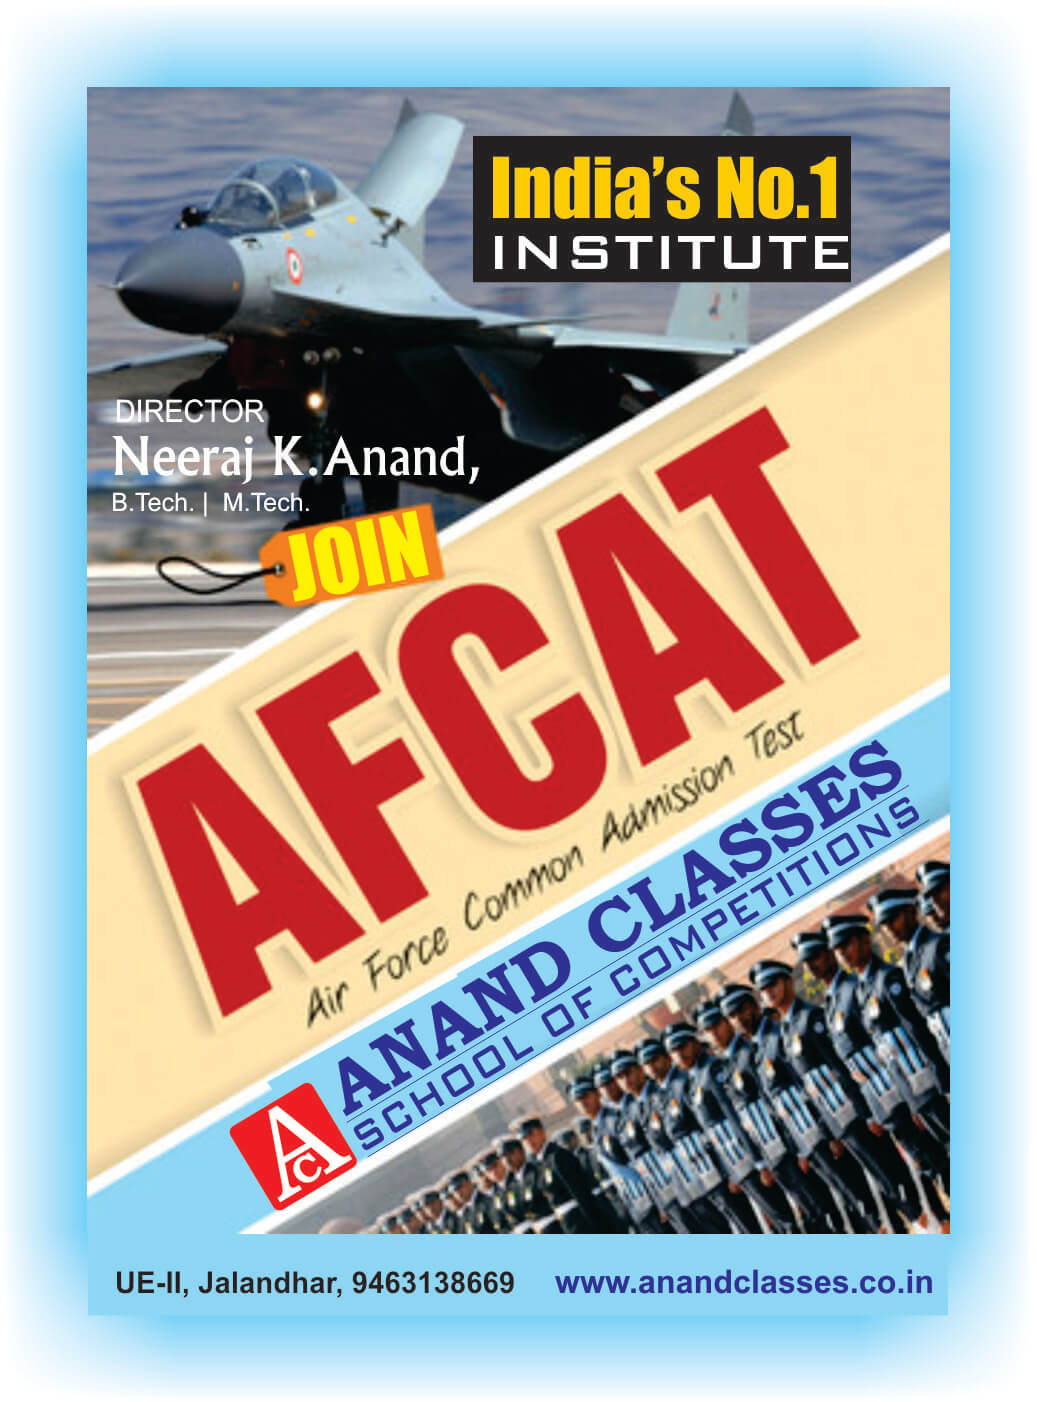 AFCAT coaching center in Jalandhar Neeraj Anand Classes